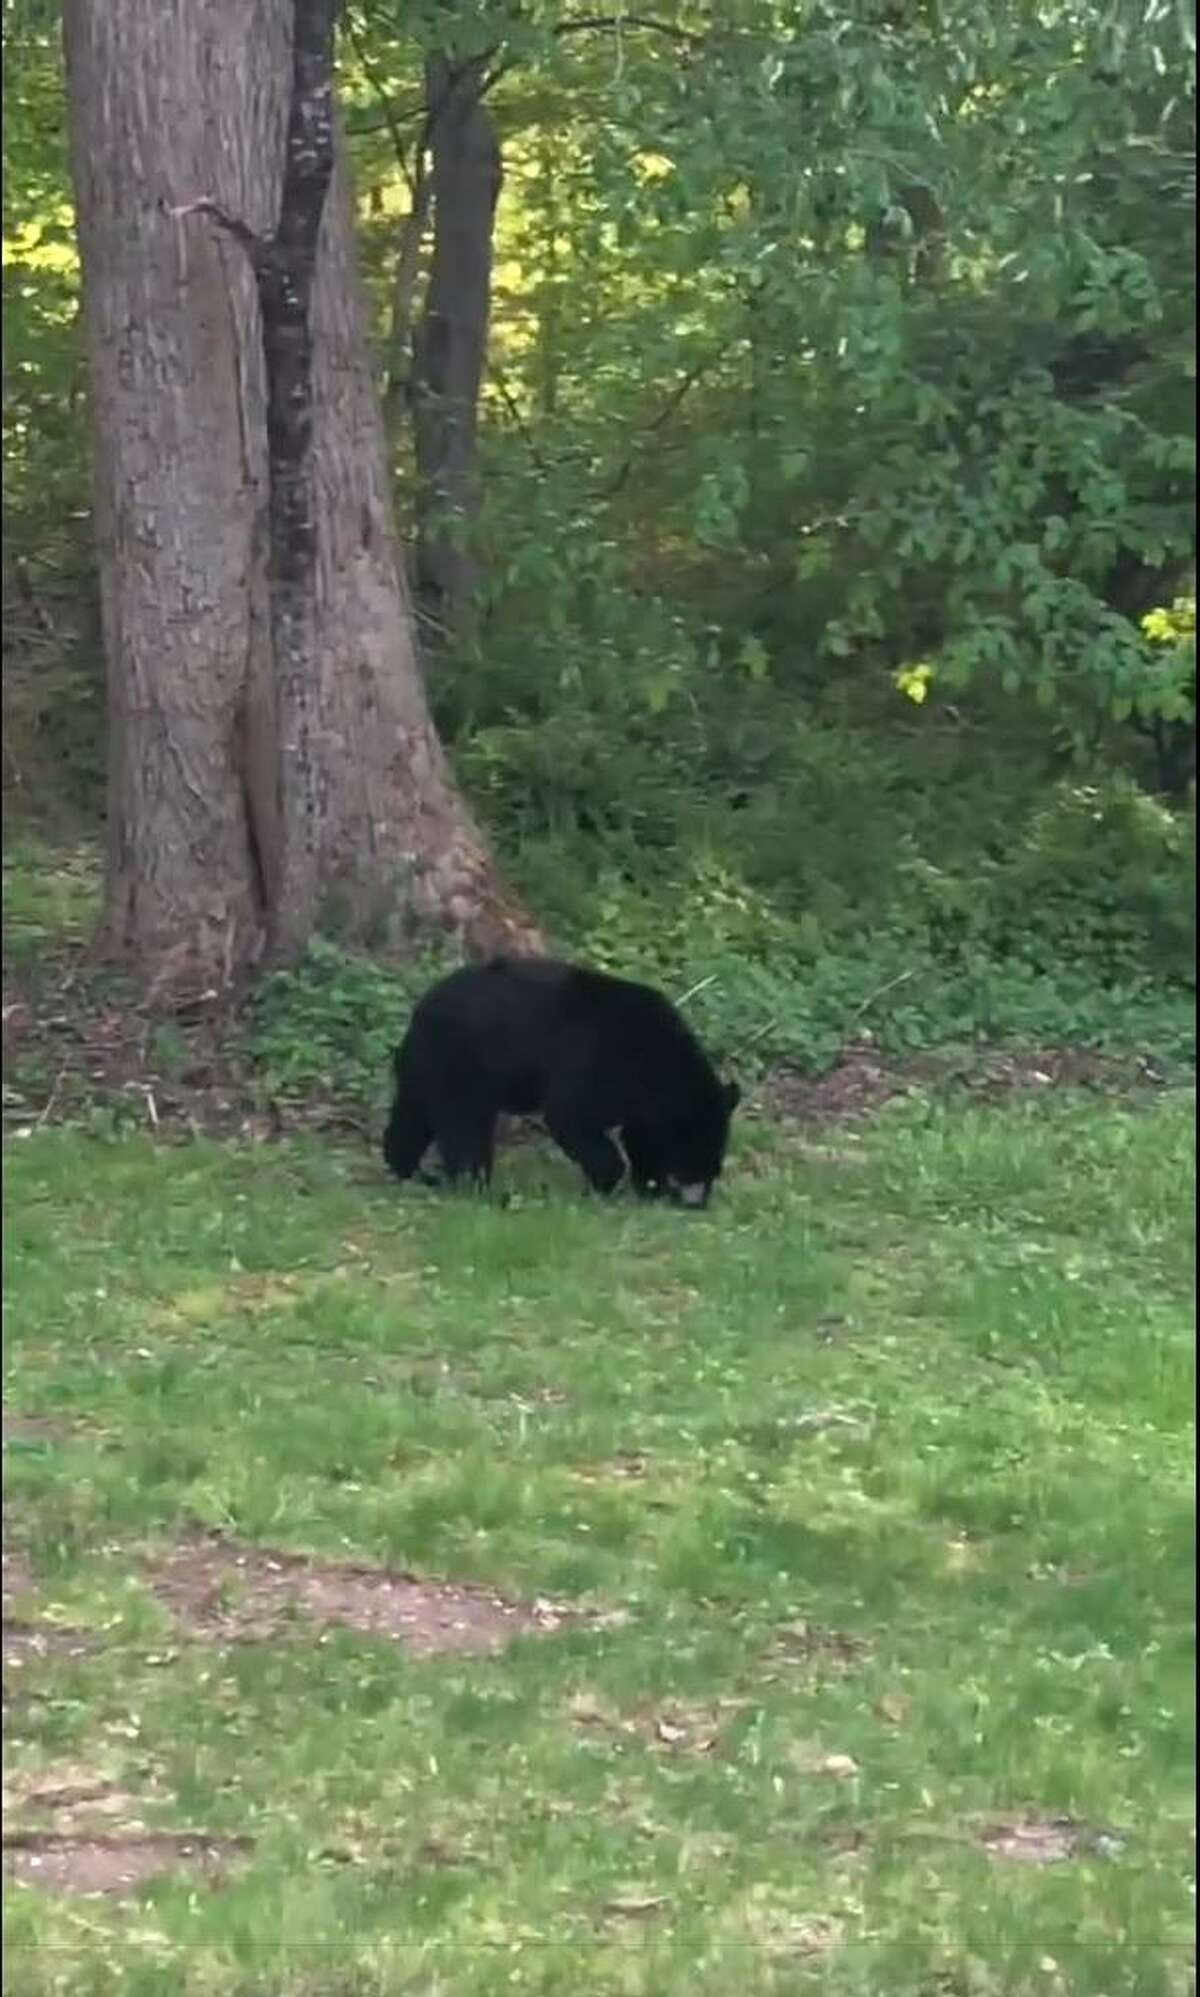 NEW MILFORD - Resident Stanlin Genao captured this black bear on video Friday, May 21, 2021 as it made its way through his yard on Mount Tom Road